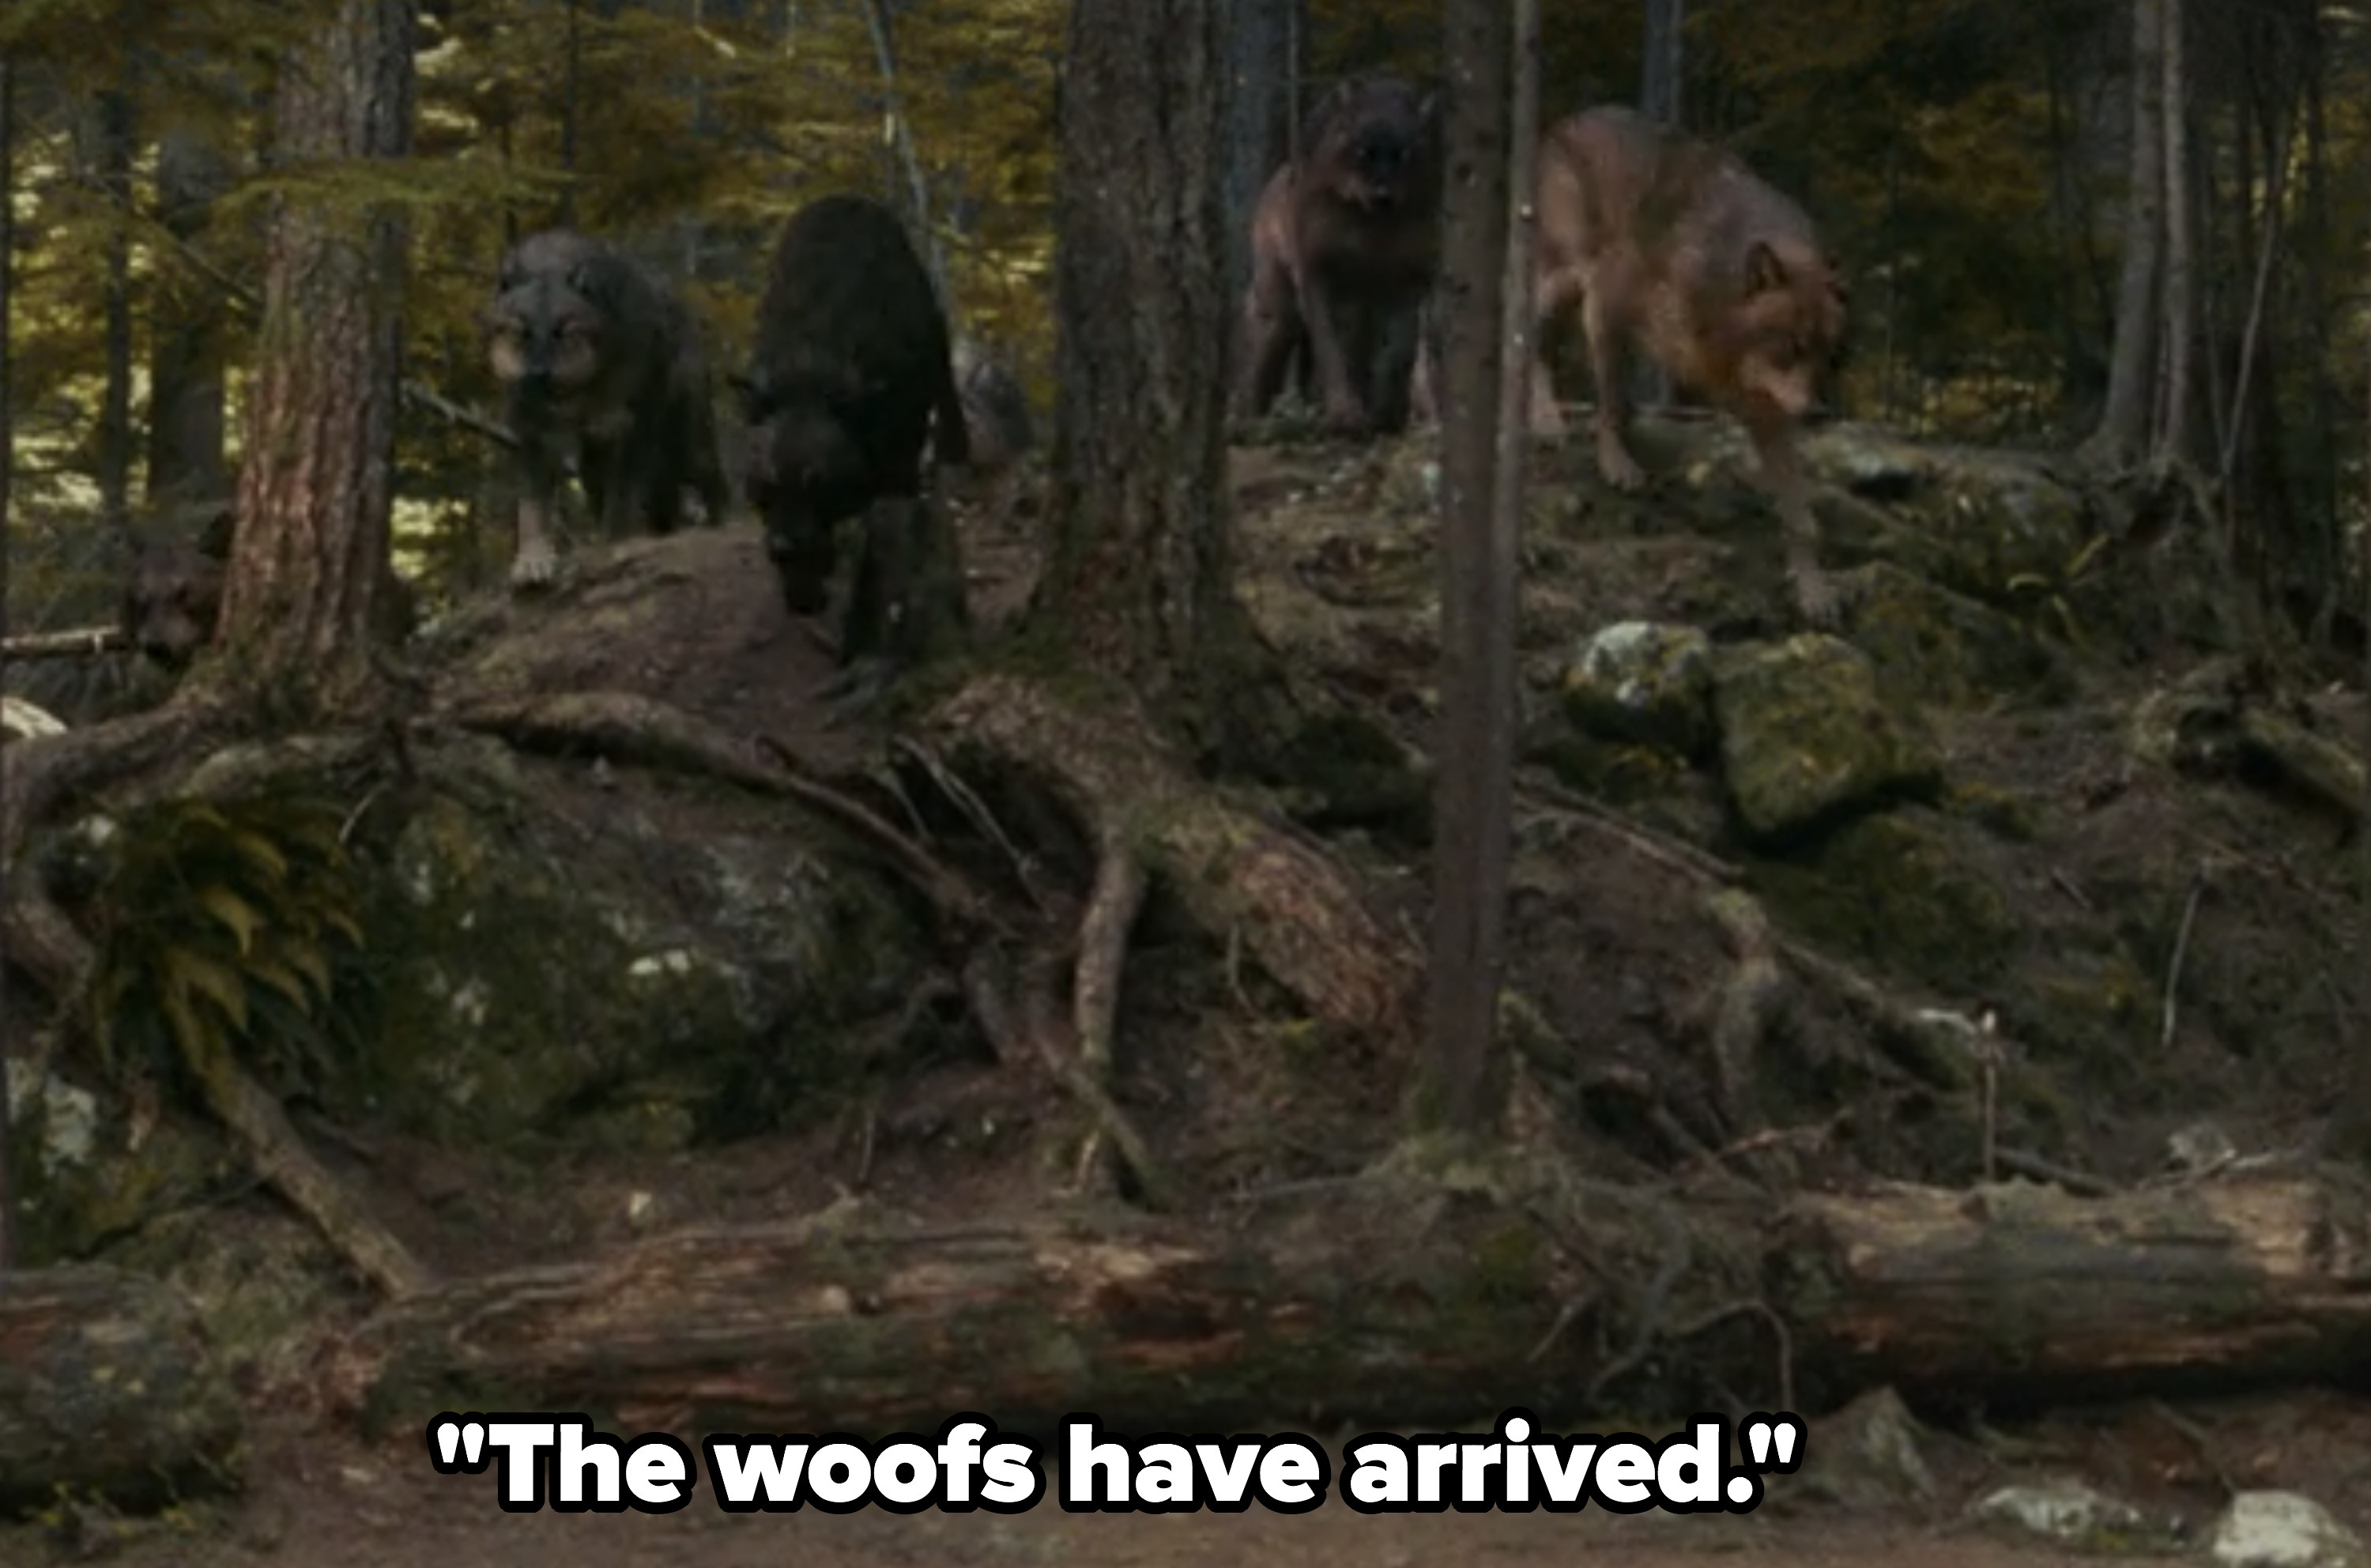 Rob: The woofs have arrived